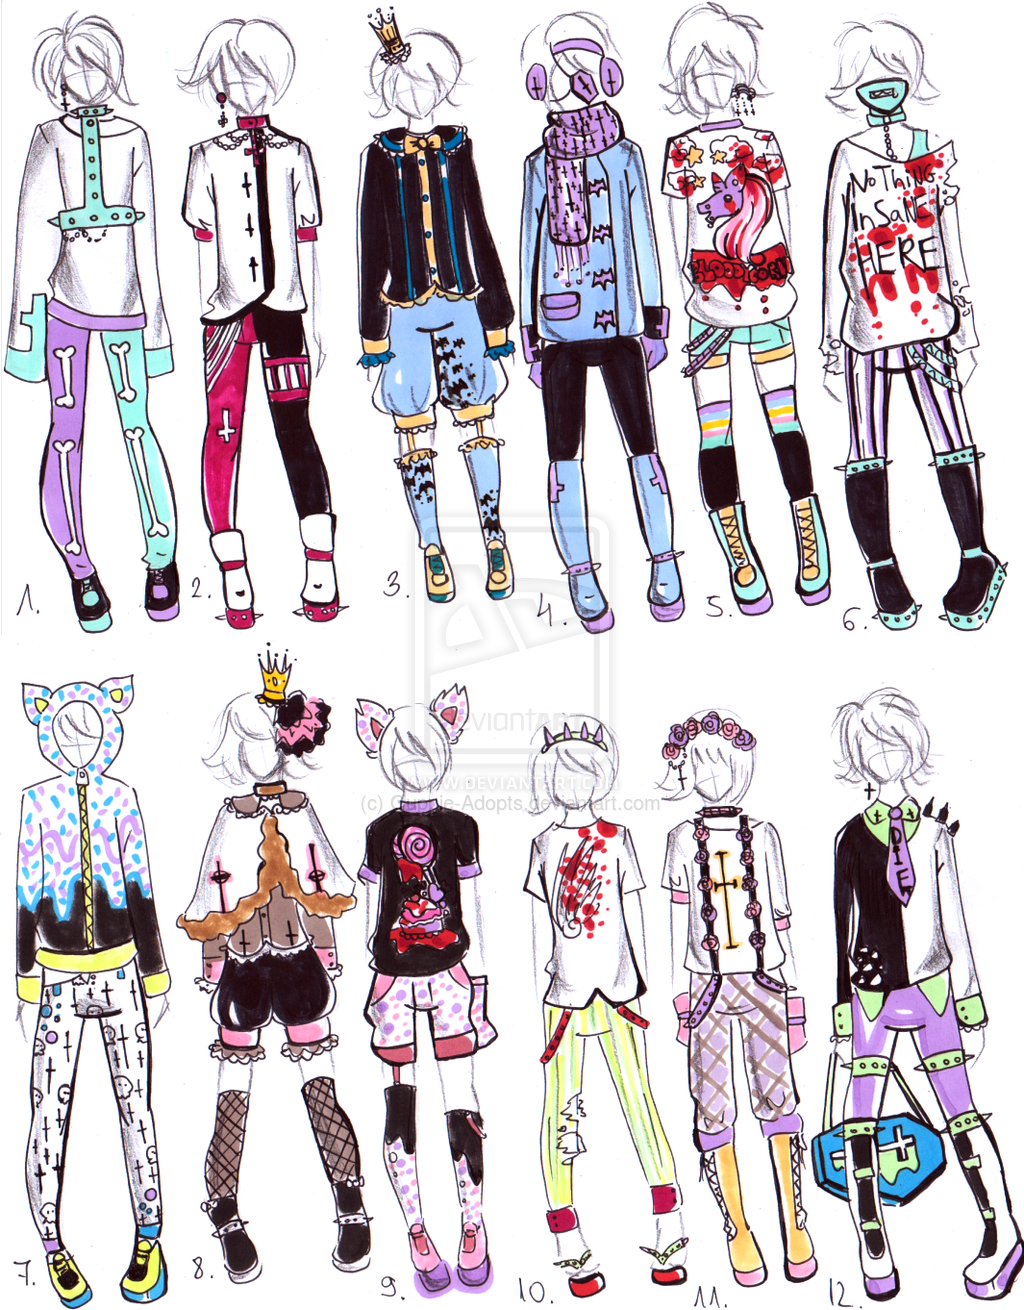 Clothing Refence Fashion Magazinesreference On Clothes: -CLOSED- Pastel Goth Male Clothes By Guppie-Adopts